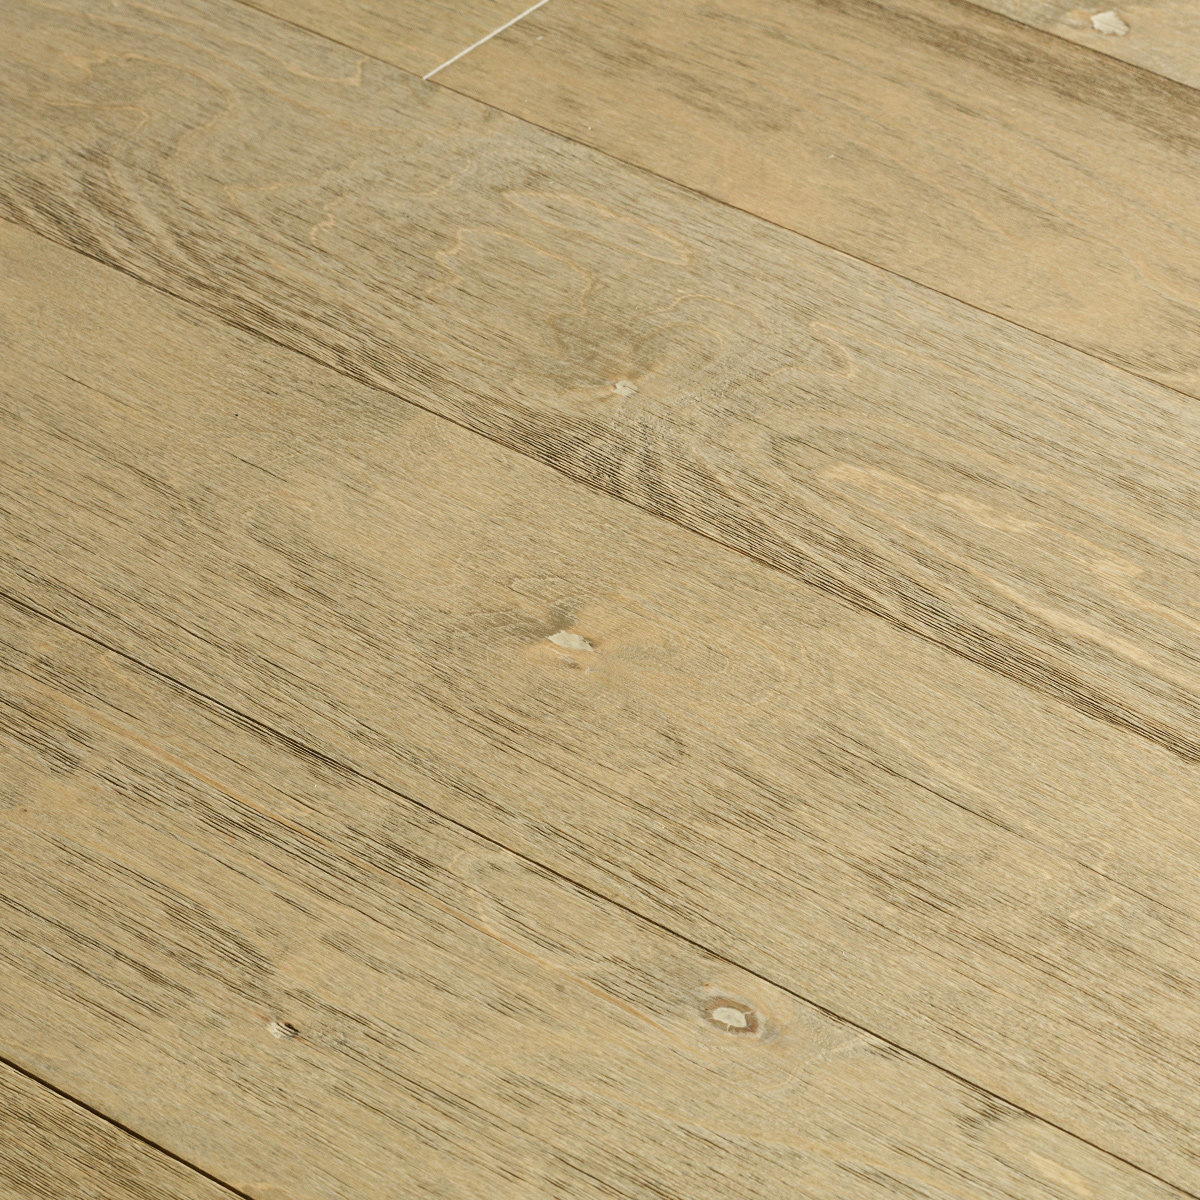 Engineered Hardwood Flooring Brands Laminate Flooring